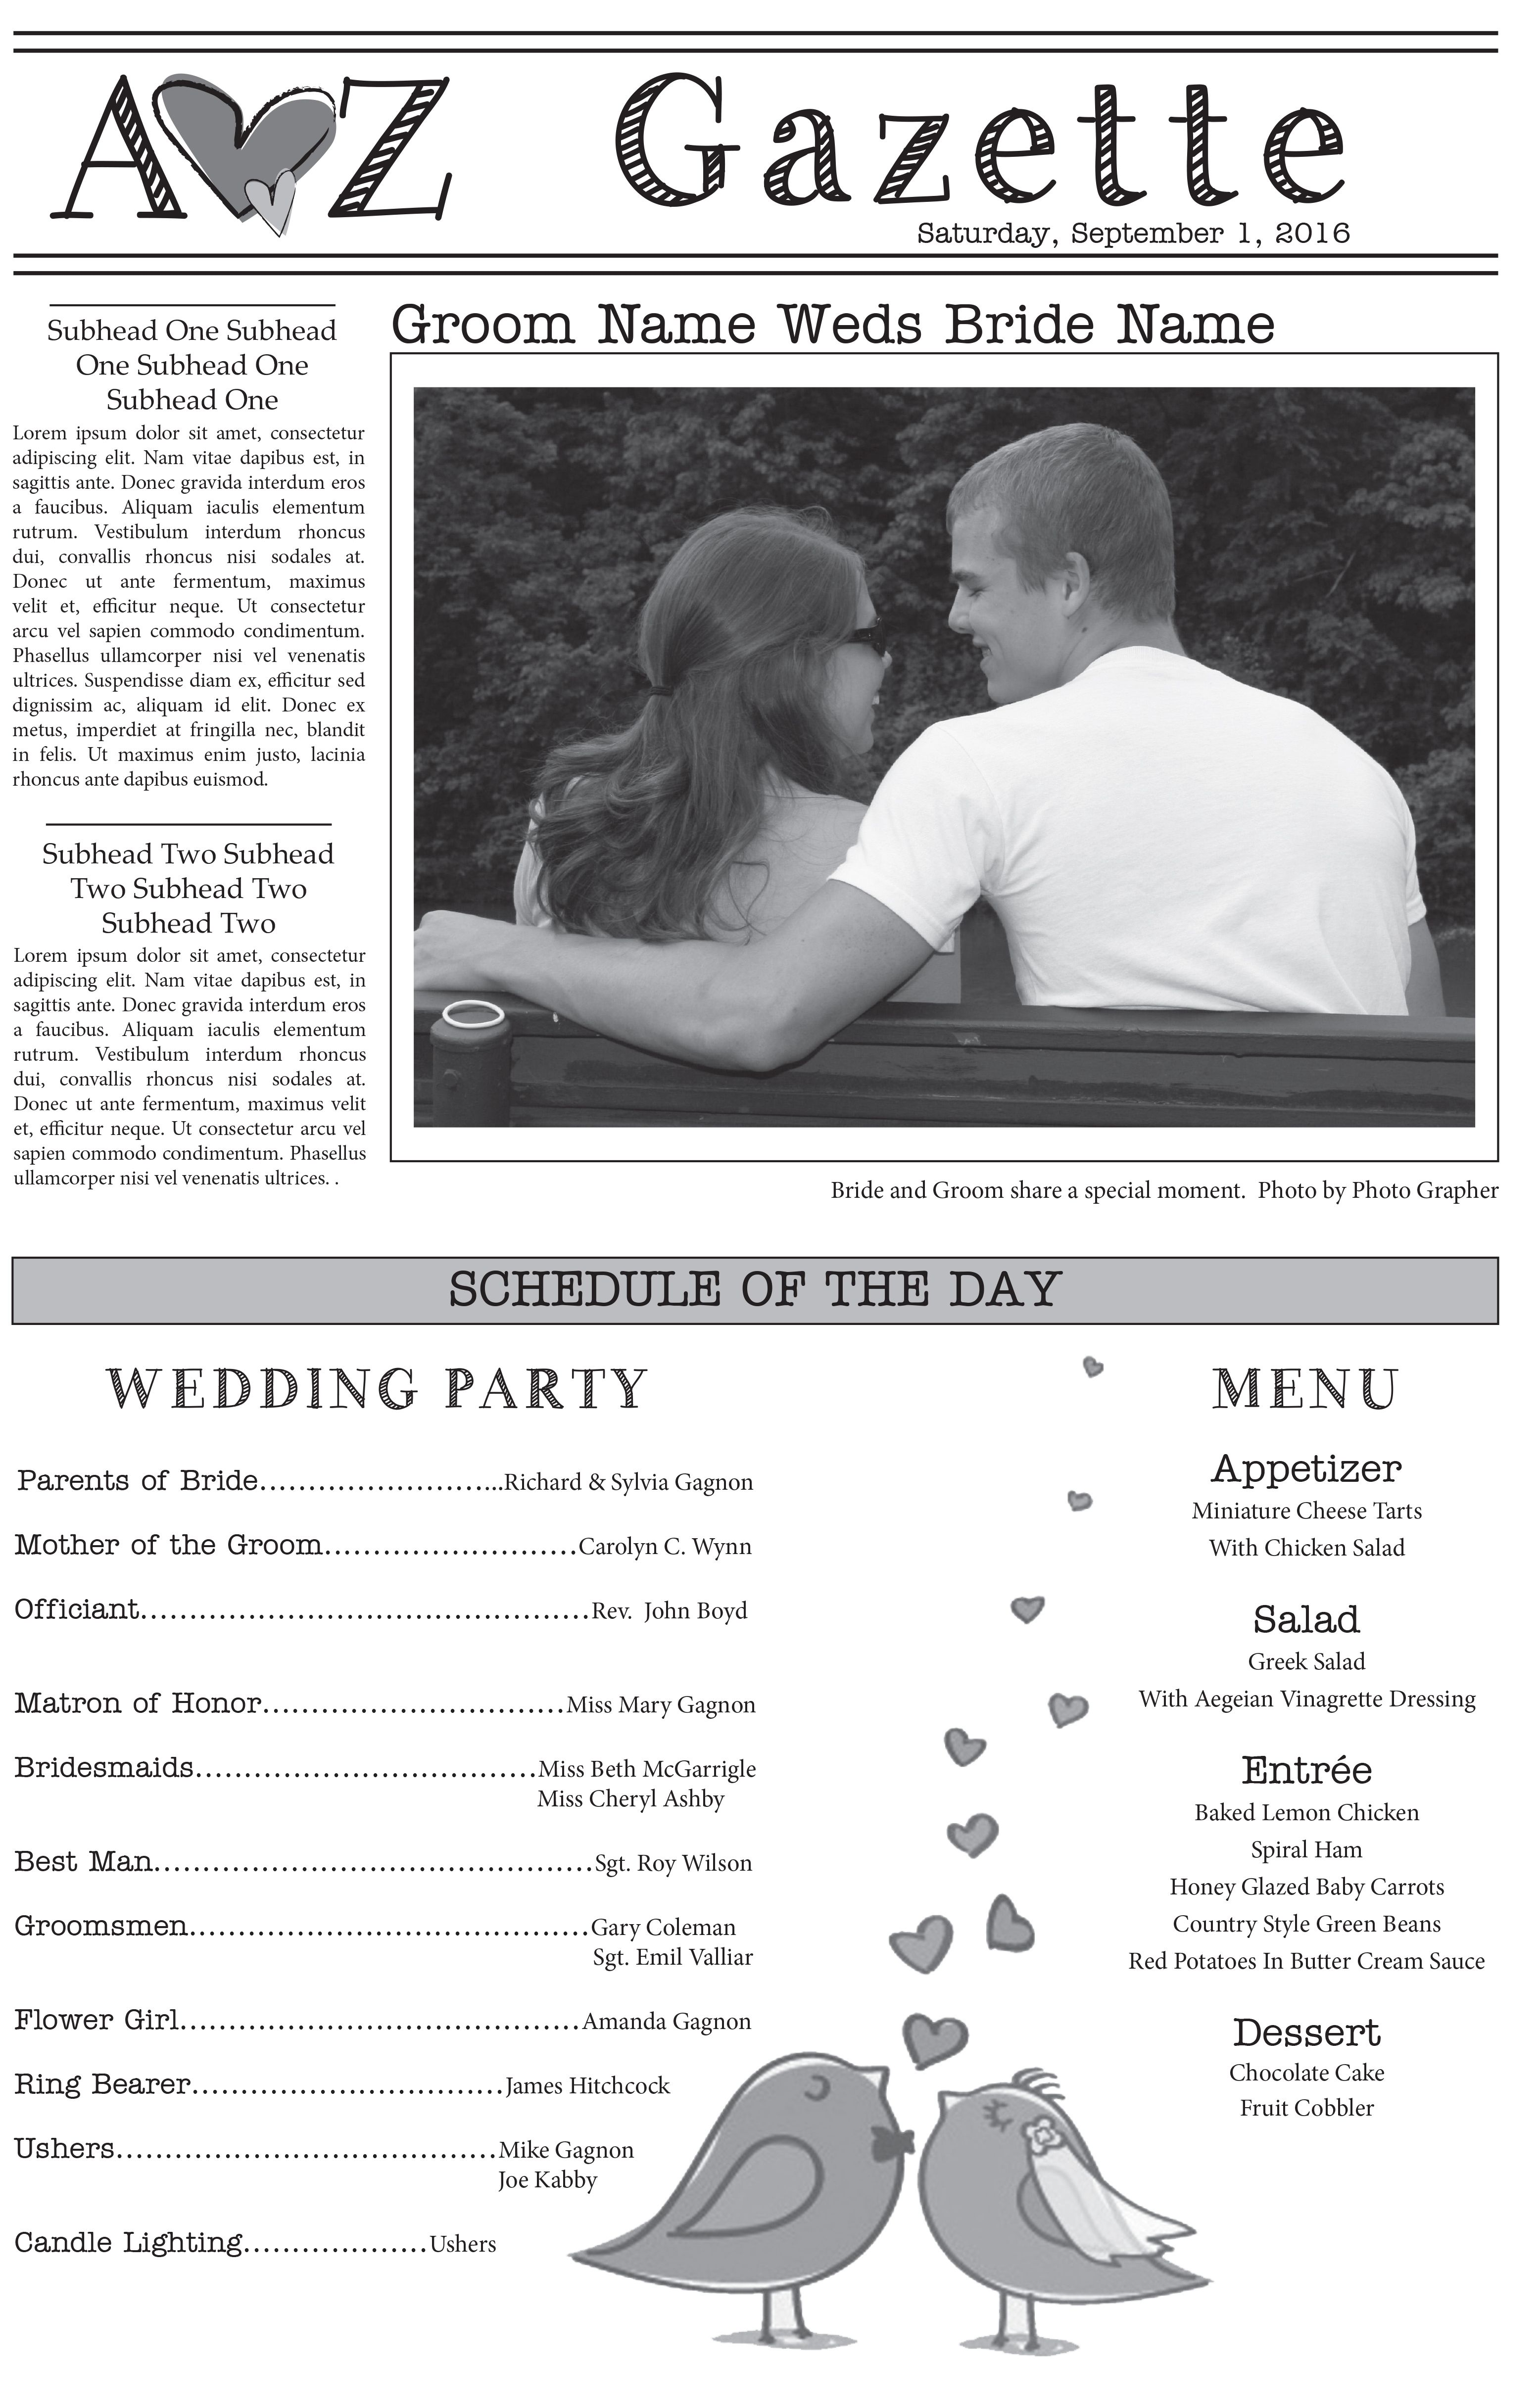 We Have Several Wedding Newspaper Templates To Choose From Let Us